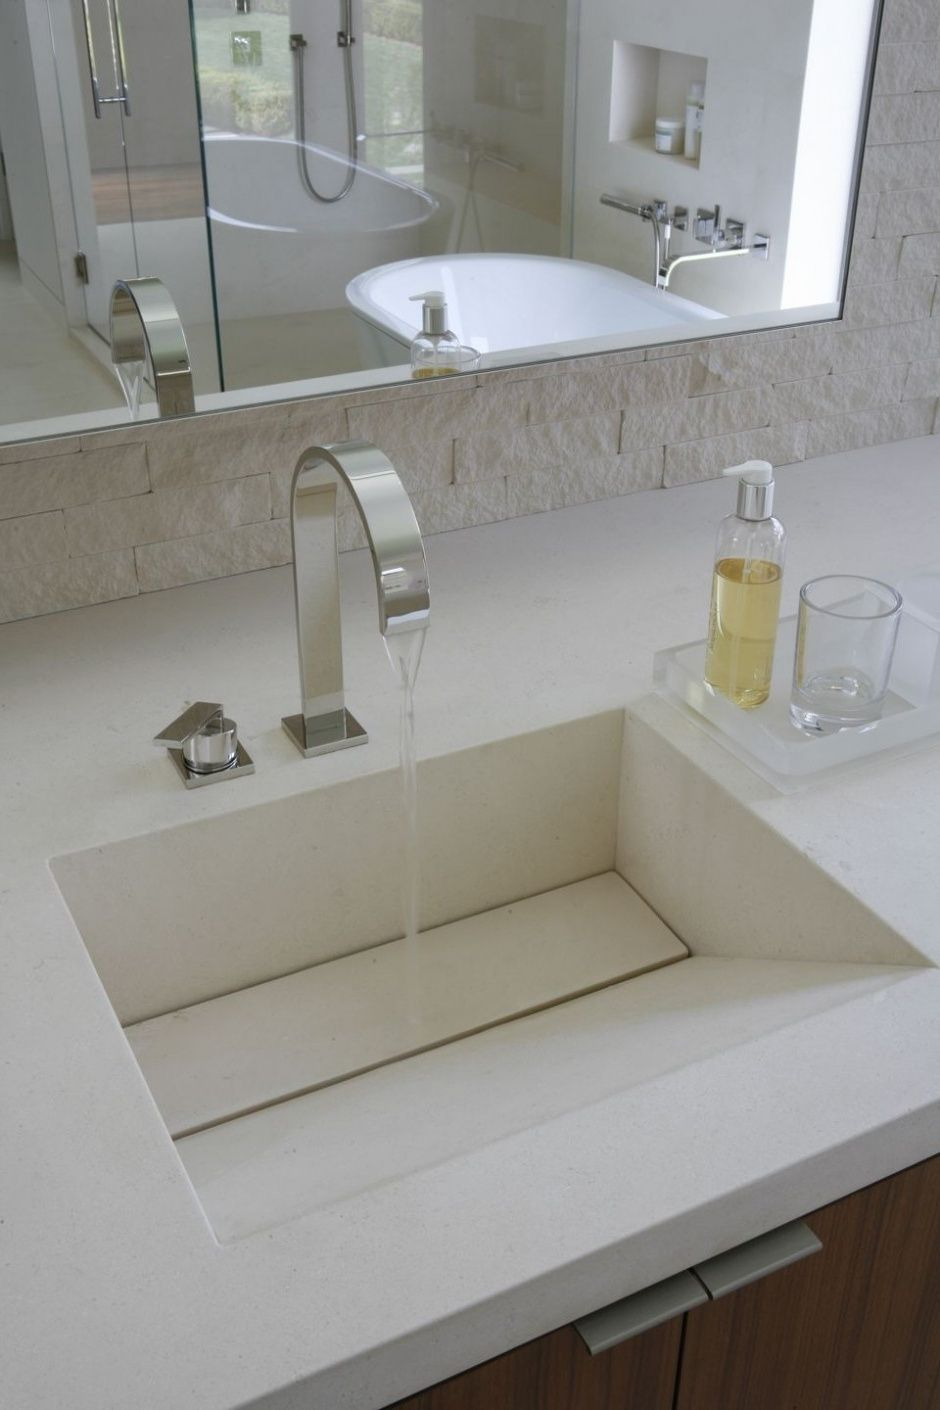 Bathroom Modern Powder Room With Stunning Faucet And Sloping Undermount Bathroom Sink Under Clear Large Mirror Modern Bathroom Sink Modern Powder Rooms Sink